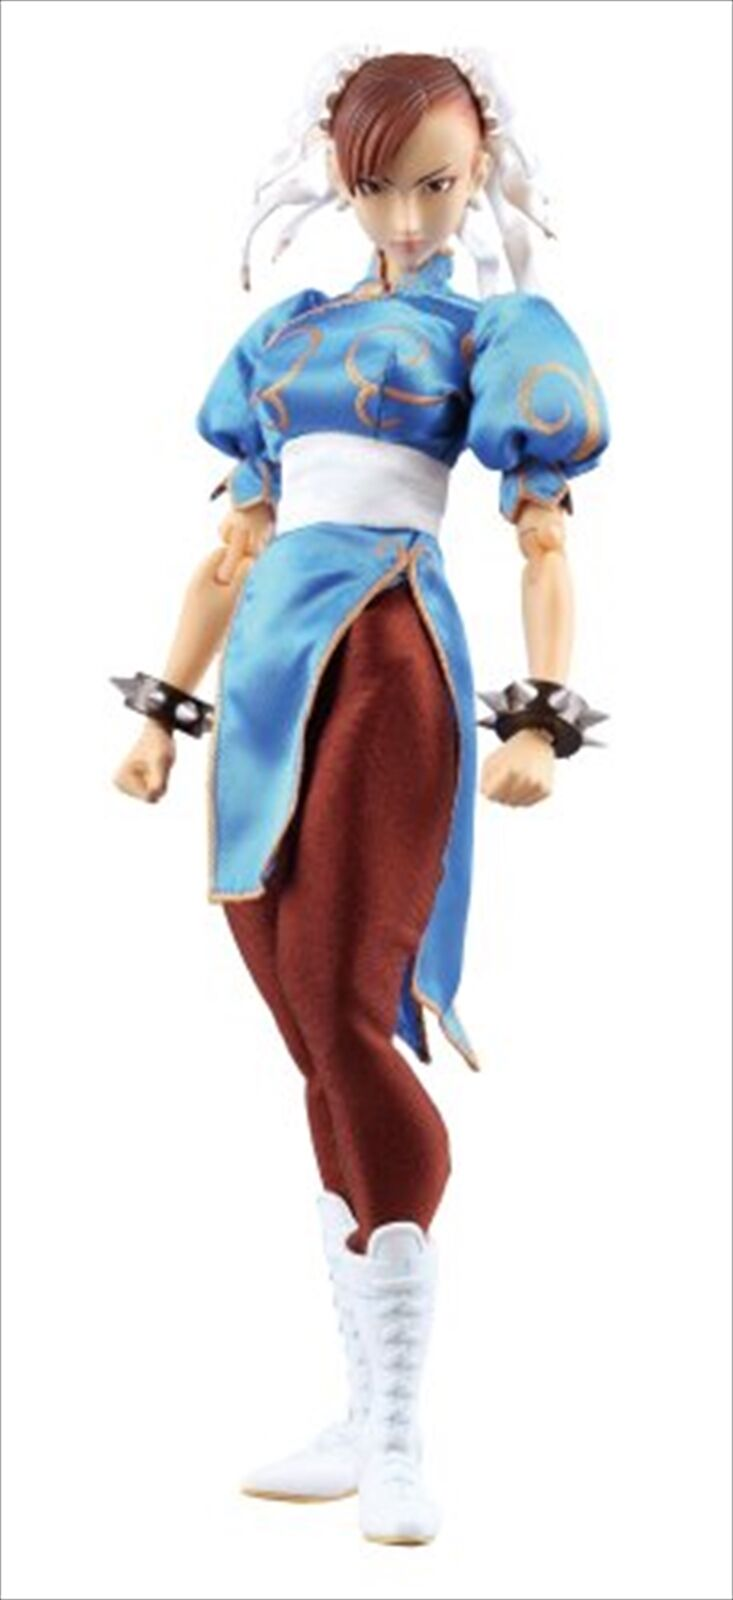 Medicom RAH Real Action Heroes Street Fighter Chun Li CHUN-LI 1/6 Figure